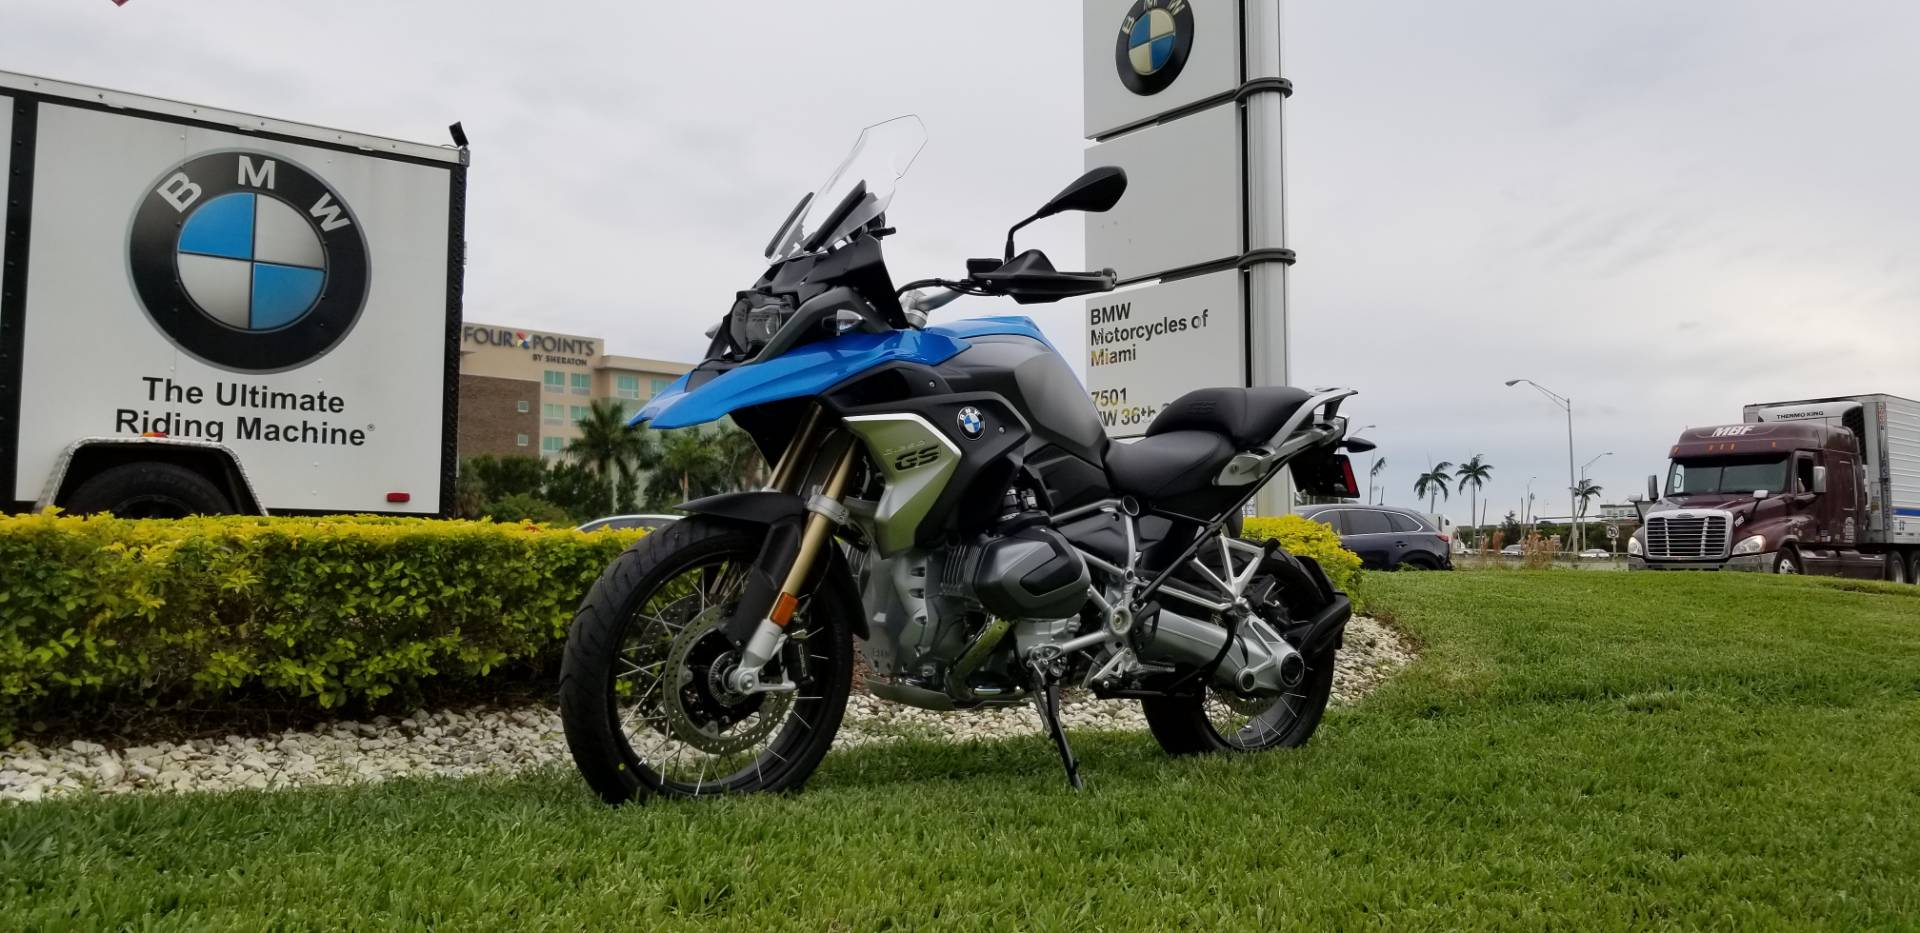 New 2019 BMW R 1250 GS for sale, BMW for sale R 1250GS, BMW Motorcycle R1250GS, new BMW 1250GS, R1250GS, BMW. BMW Motorcycles of Miami, Motorcycles of Miami - Photo 8